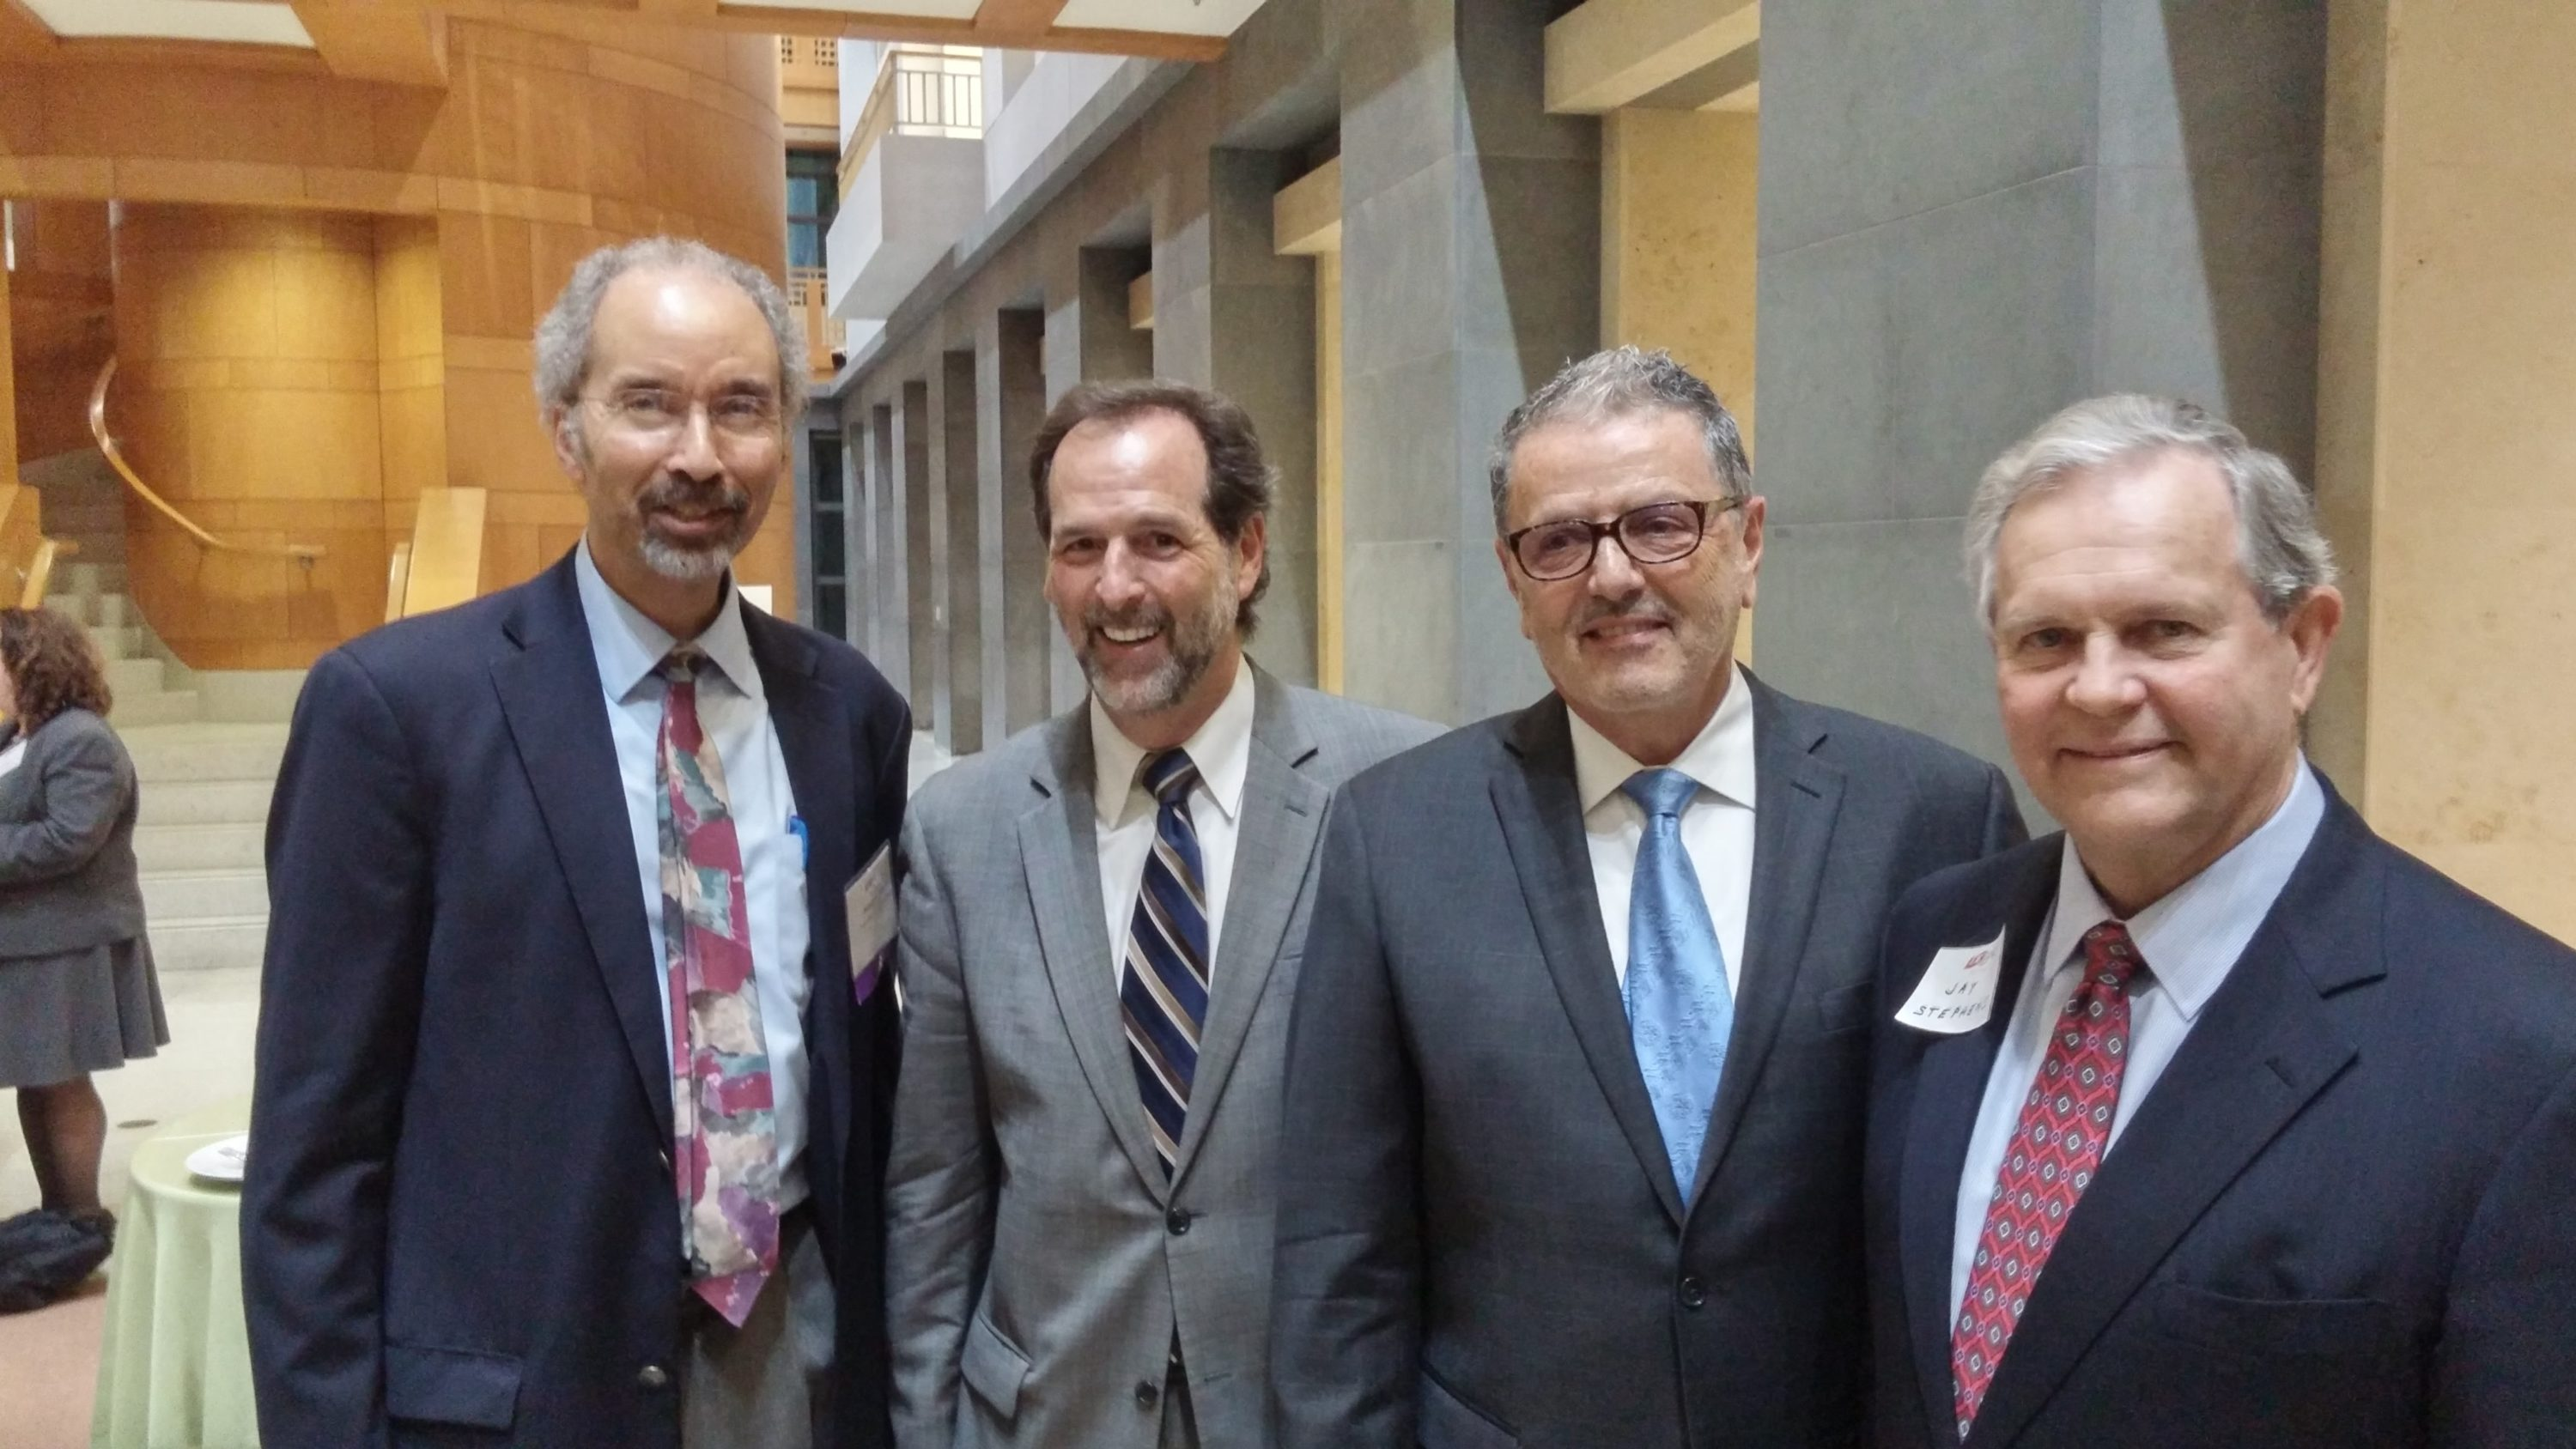 Roberts at a DC Bar reception this past spring, with, left to right, lawyers Howard Katzoff and Thomas Abbenante, and former DC US Attorney Jay Stephens. Photograph by Jeffery Leon, DC Bar.